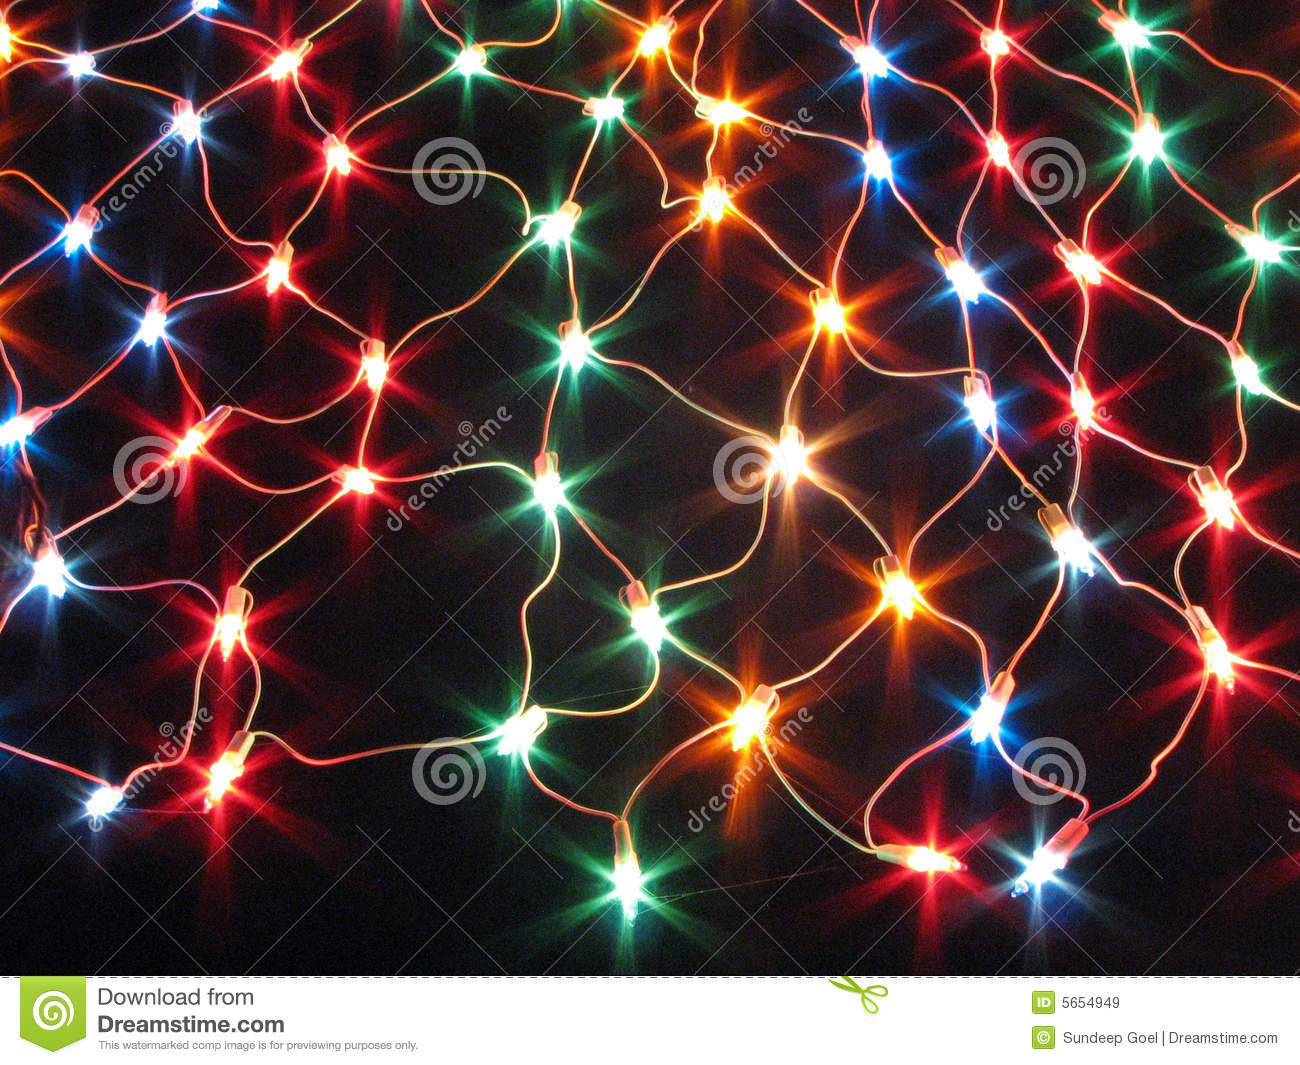 Decorative Colourful String Light Net Royalty Free Stock Images - Image: 5654949